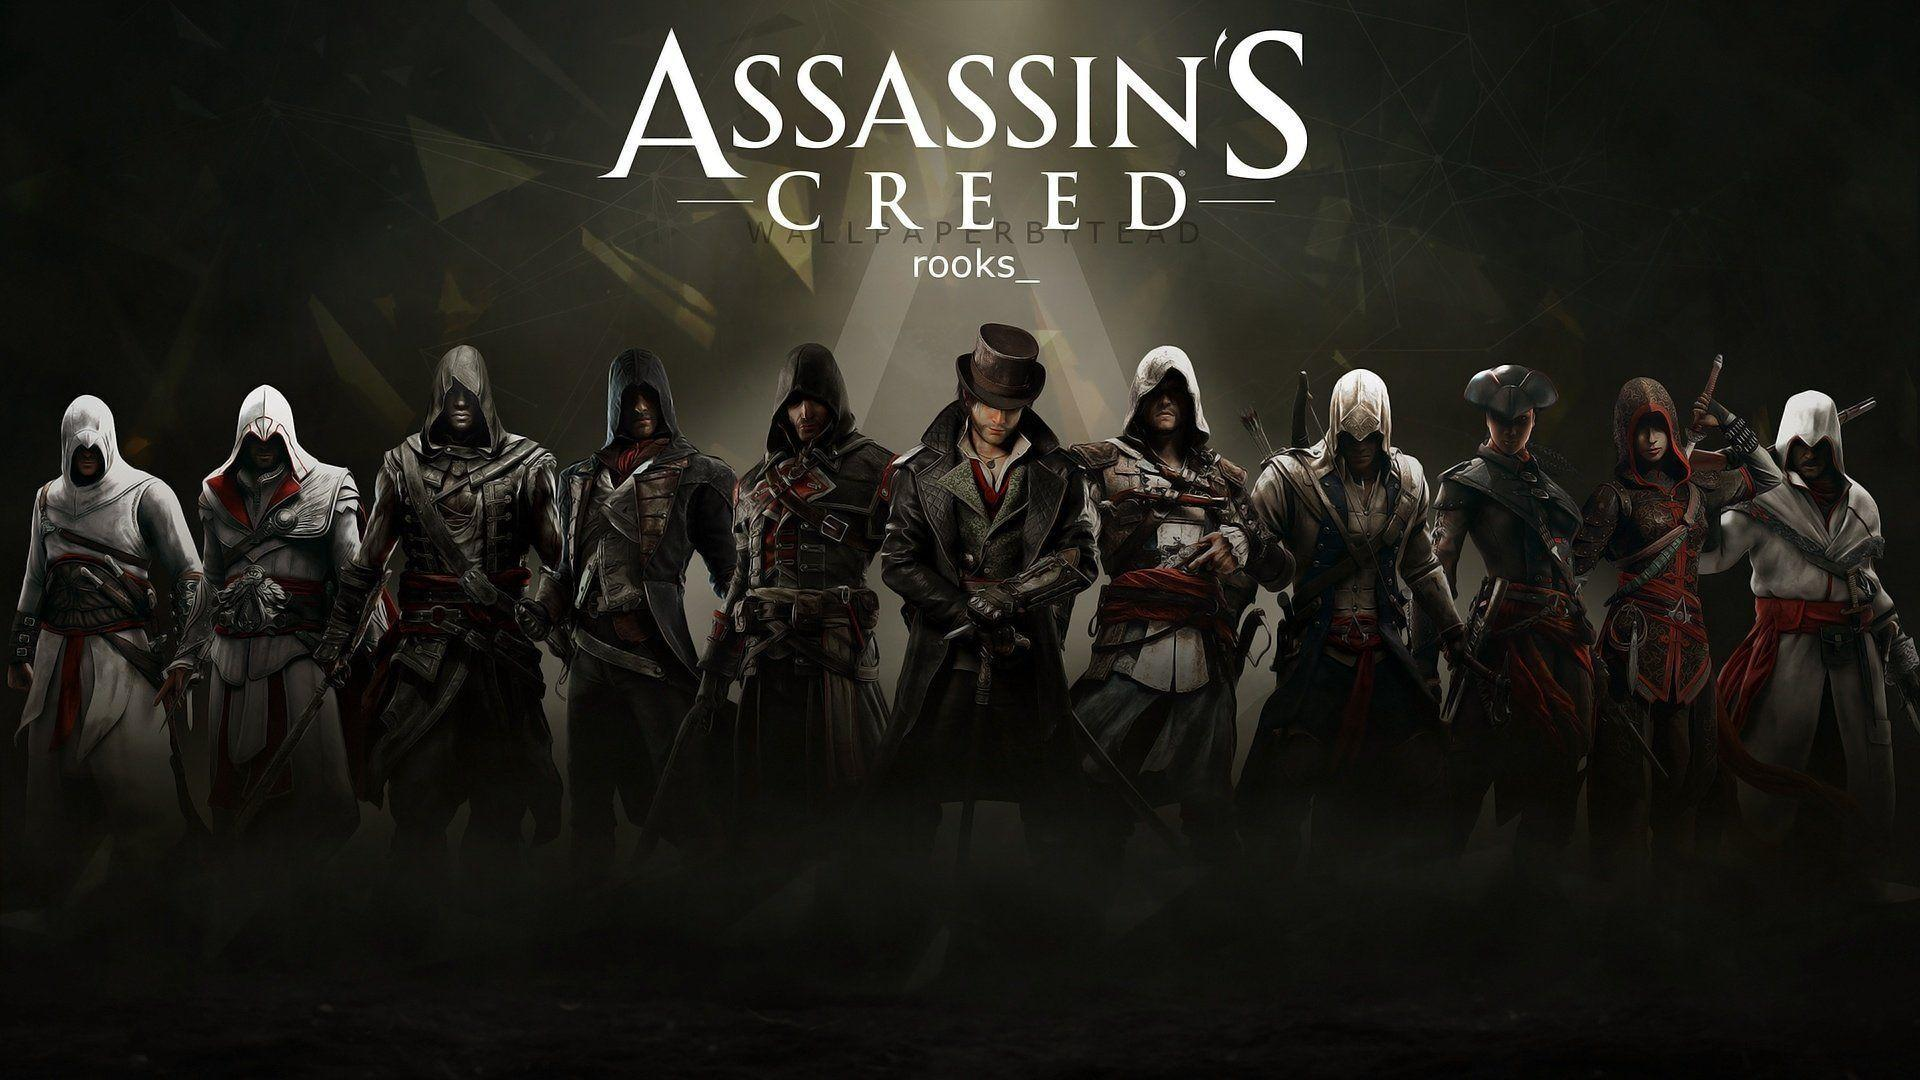 1093 Assassin's Creed HD Wallpapers